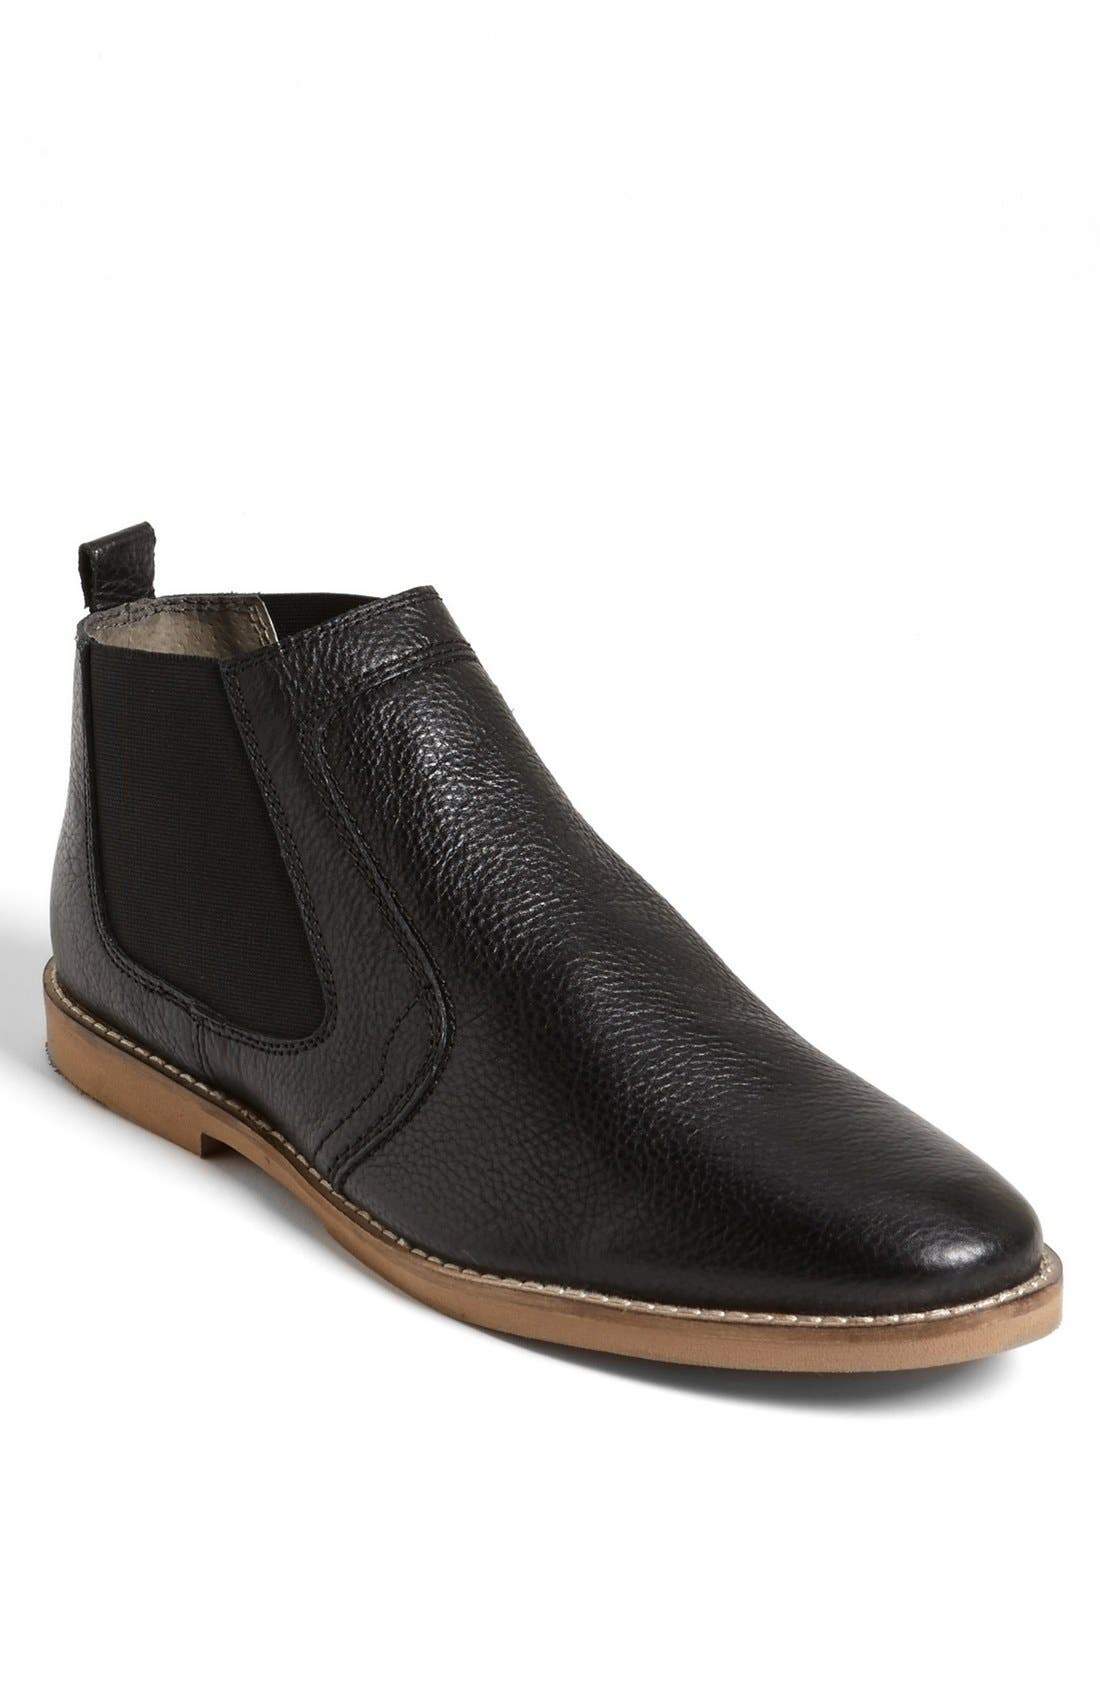 Main Image - Frank Wright 'Wise II' Chelsea Boot